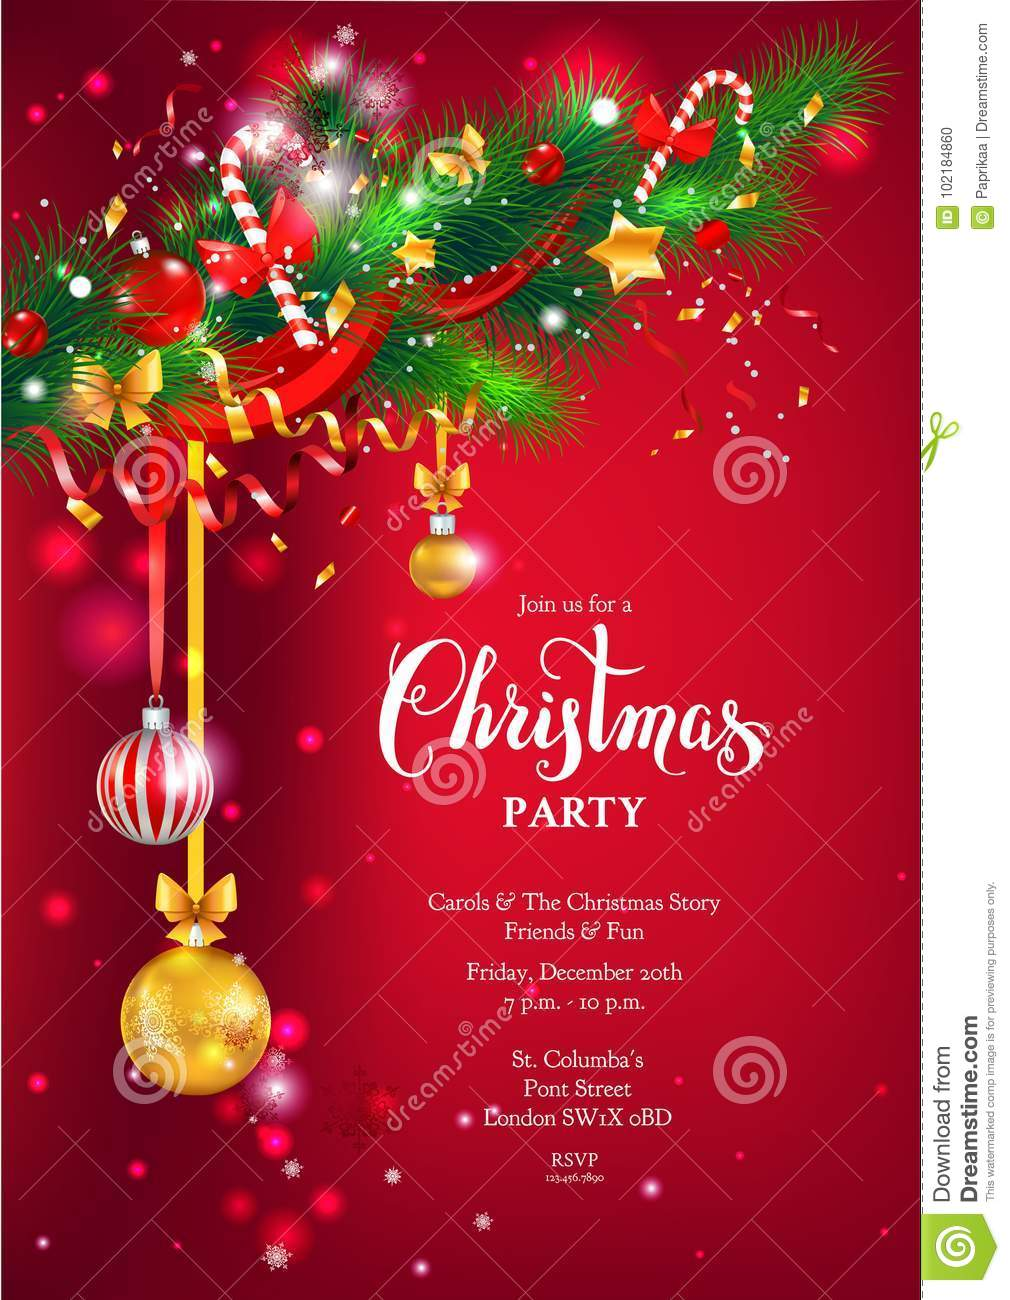 Red happy Christmas card stock vector. Illustration of background